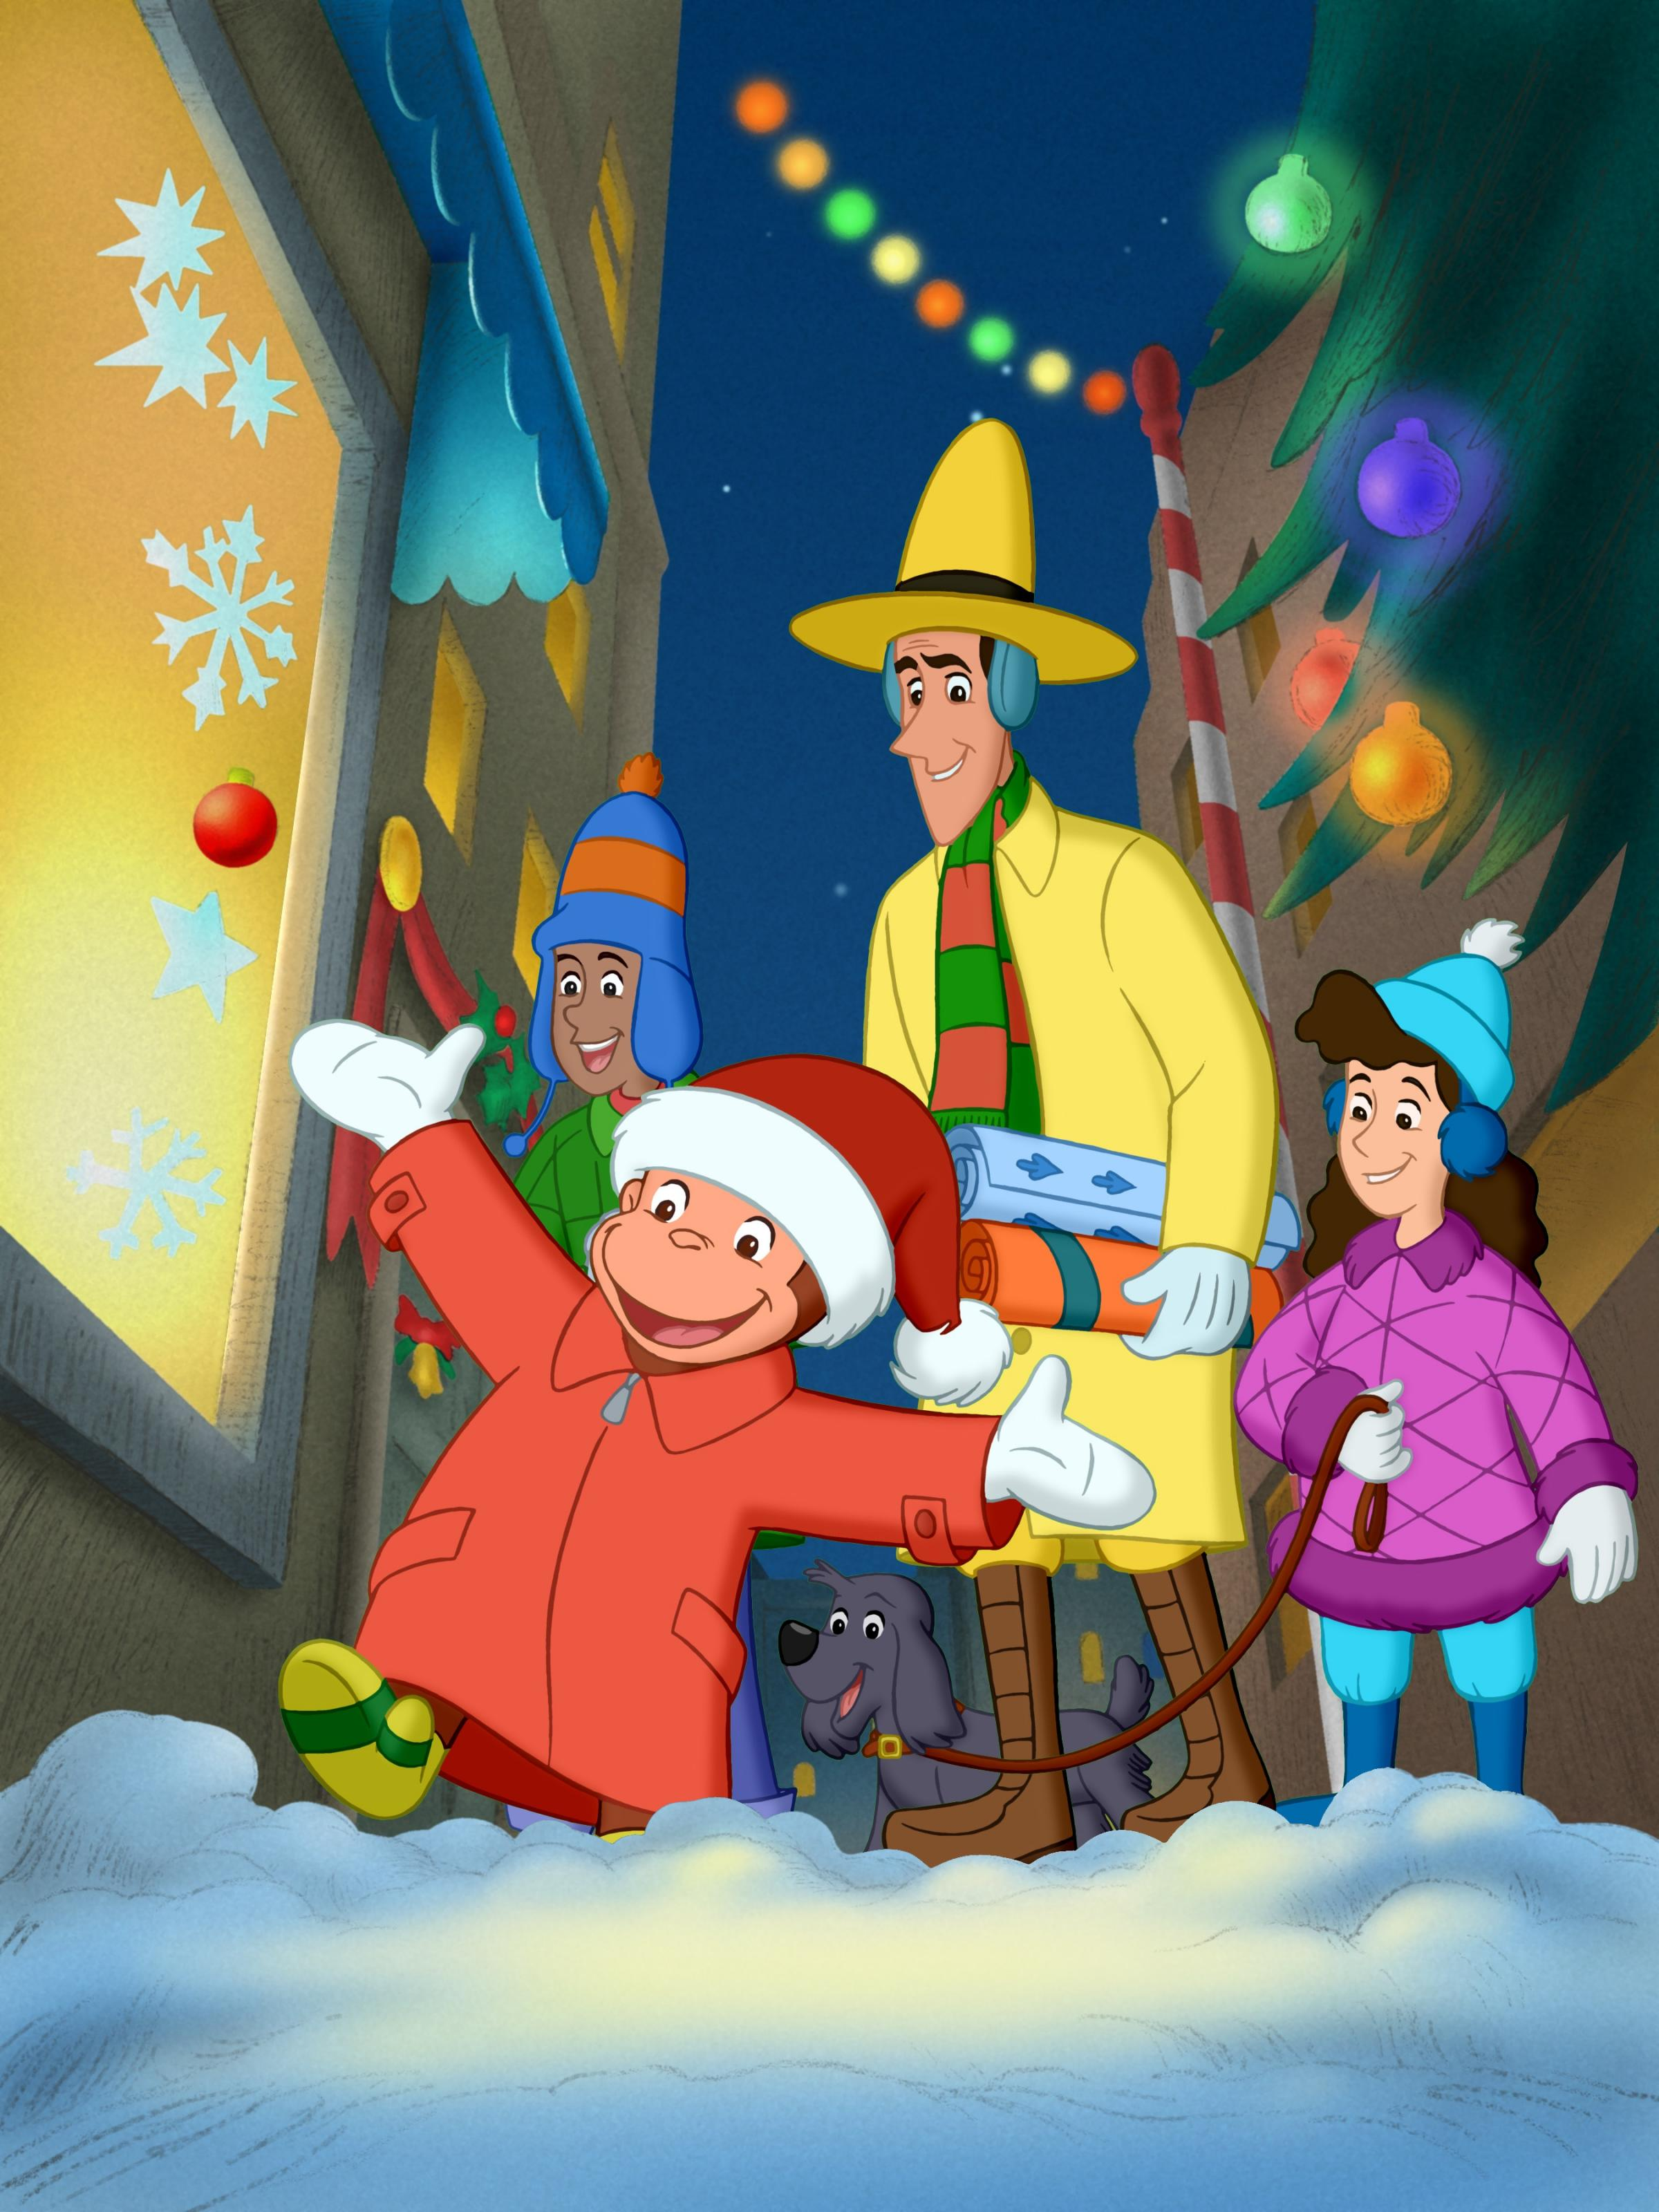 New And Favorite Episodes Spread Cheer With Fun And